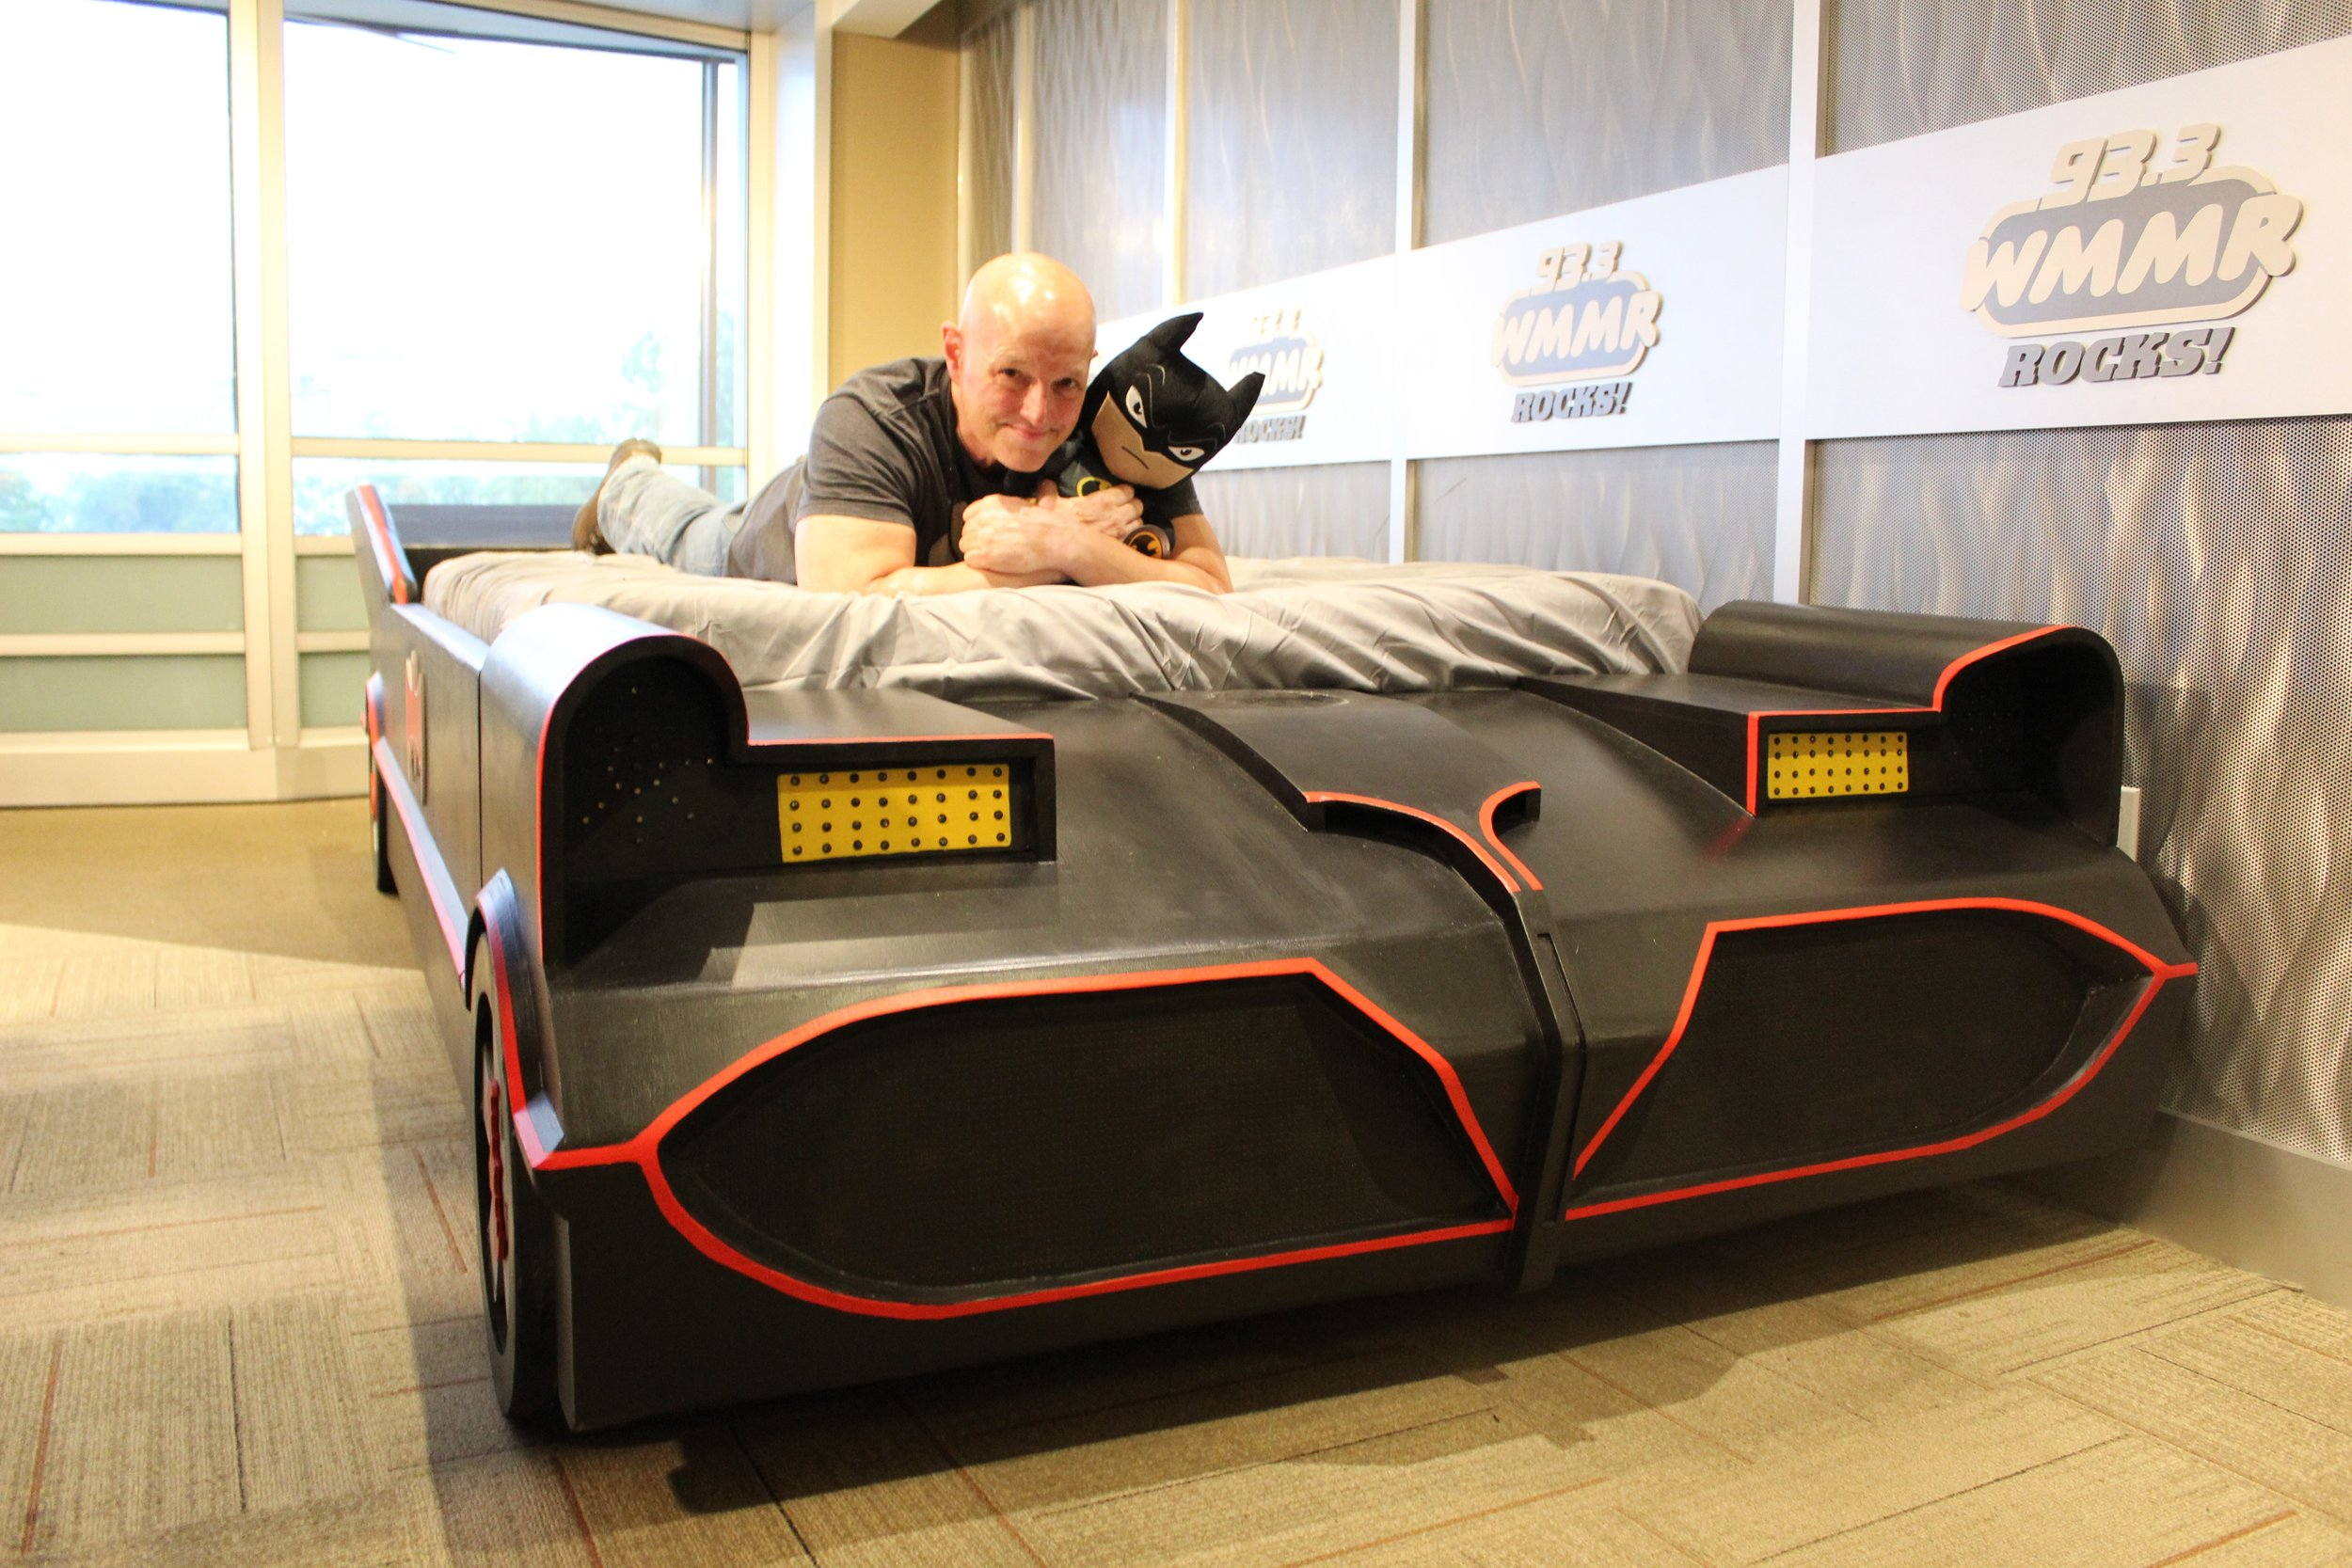 Steves-Batmobile-Bed-Surprise-36.jpg